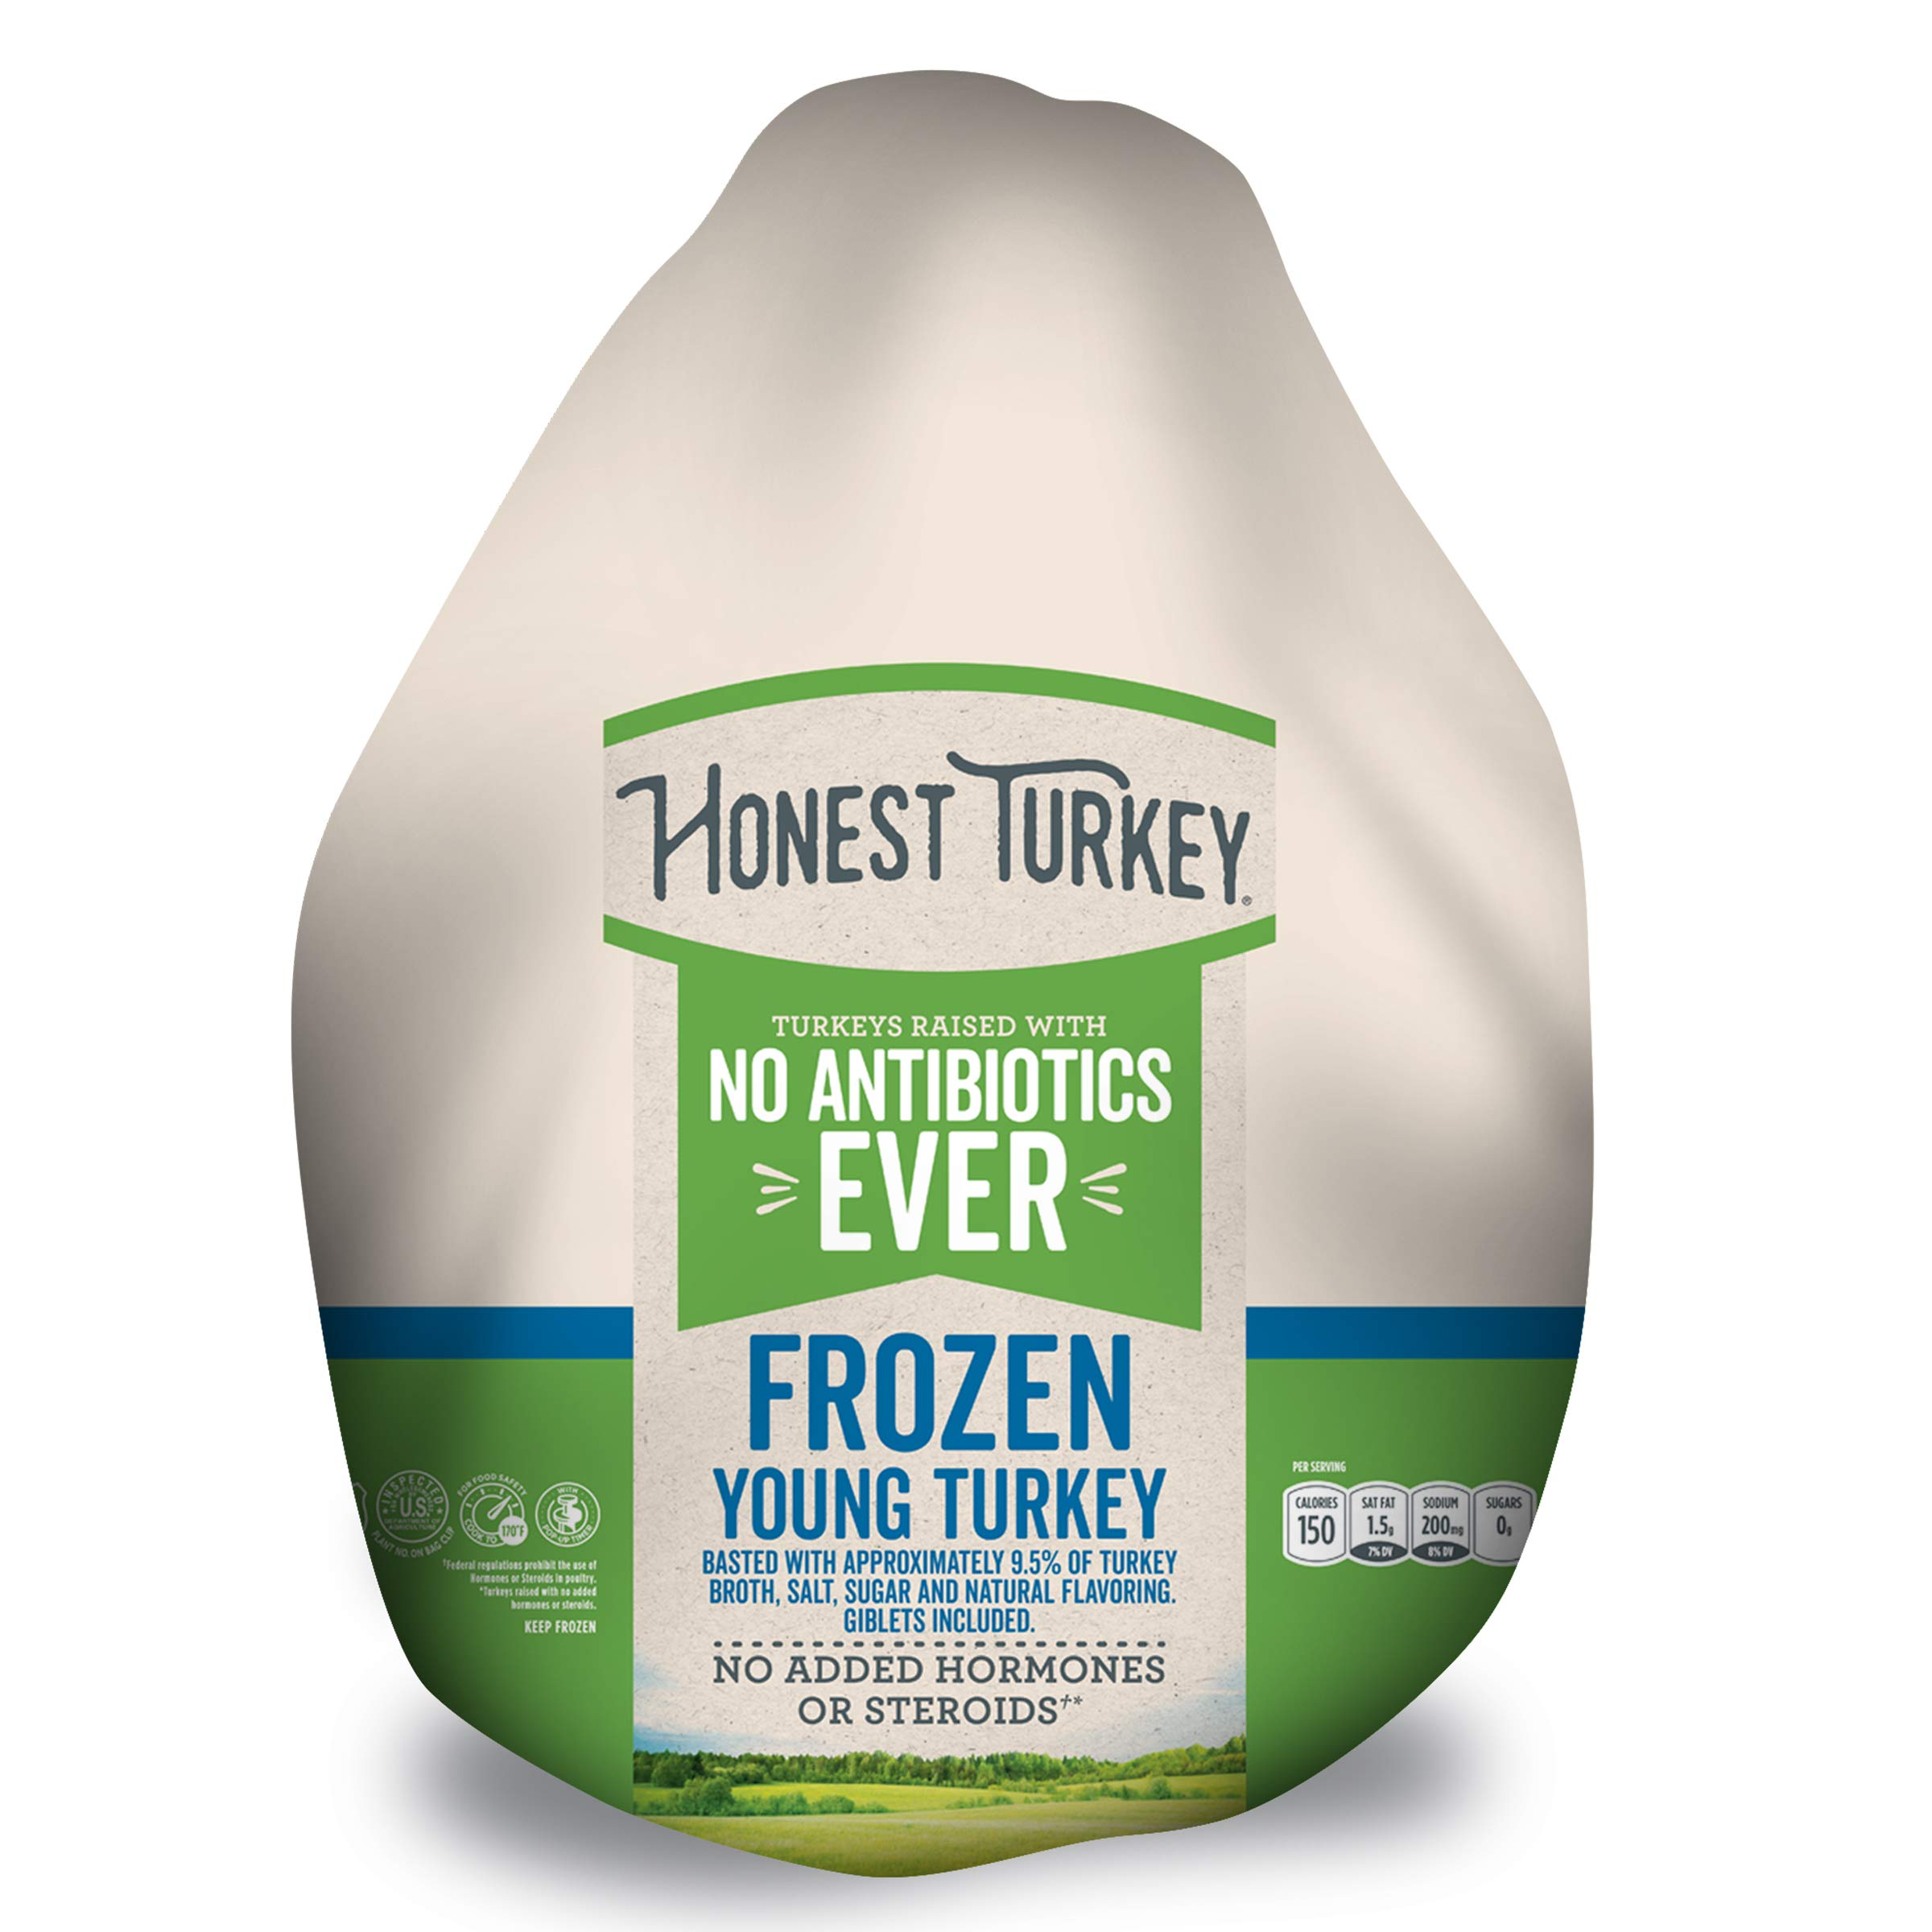 Honest Turkey Whole Turkey, 10-14 lbs., Frozen - Turkeys raised with No Antibiotics Ever